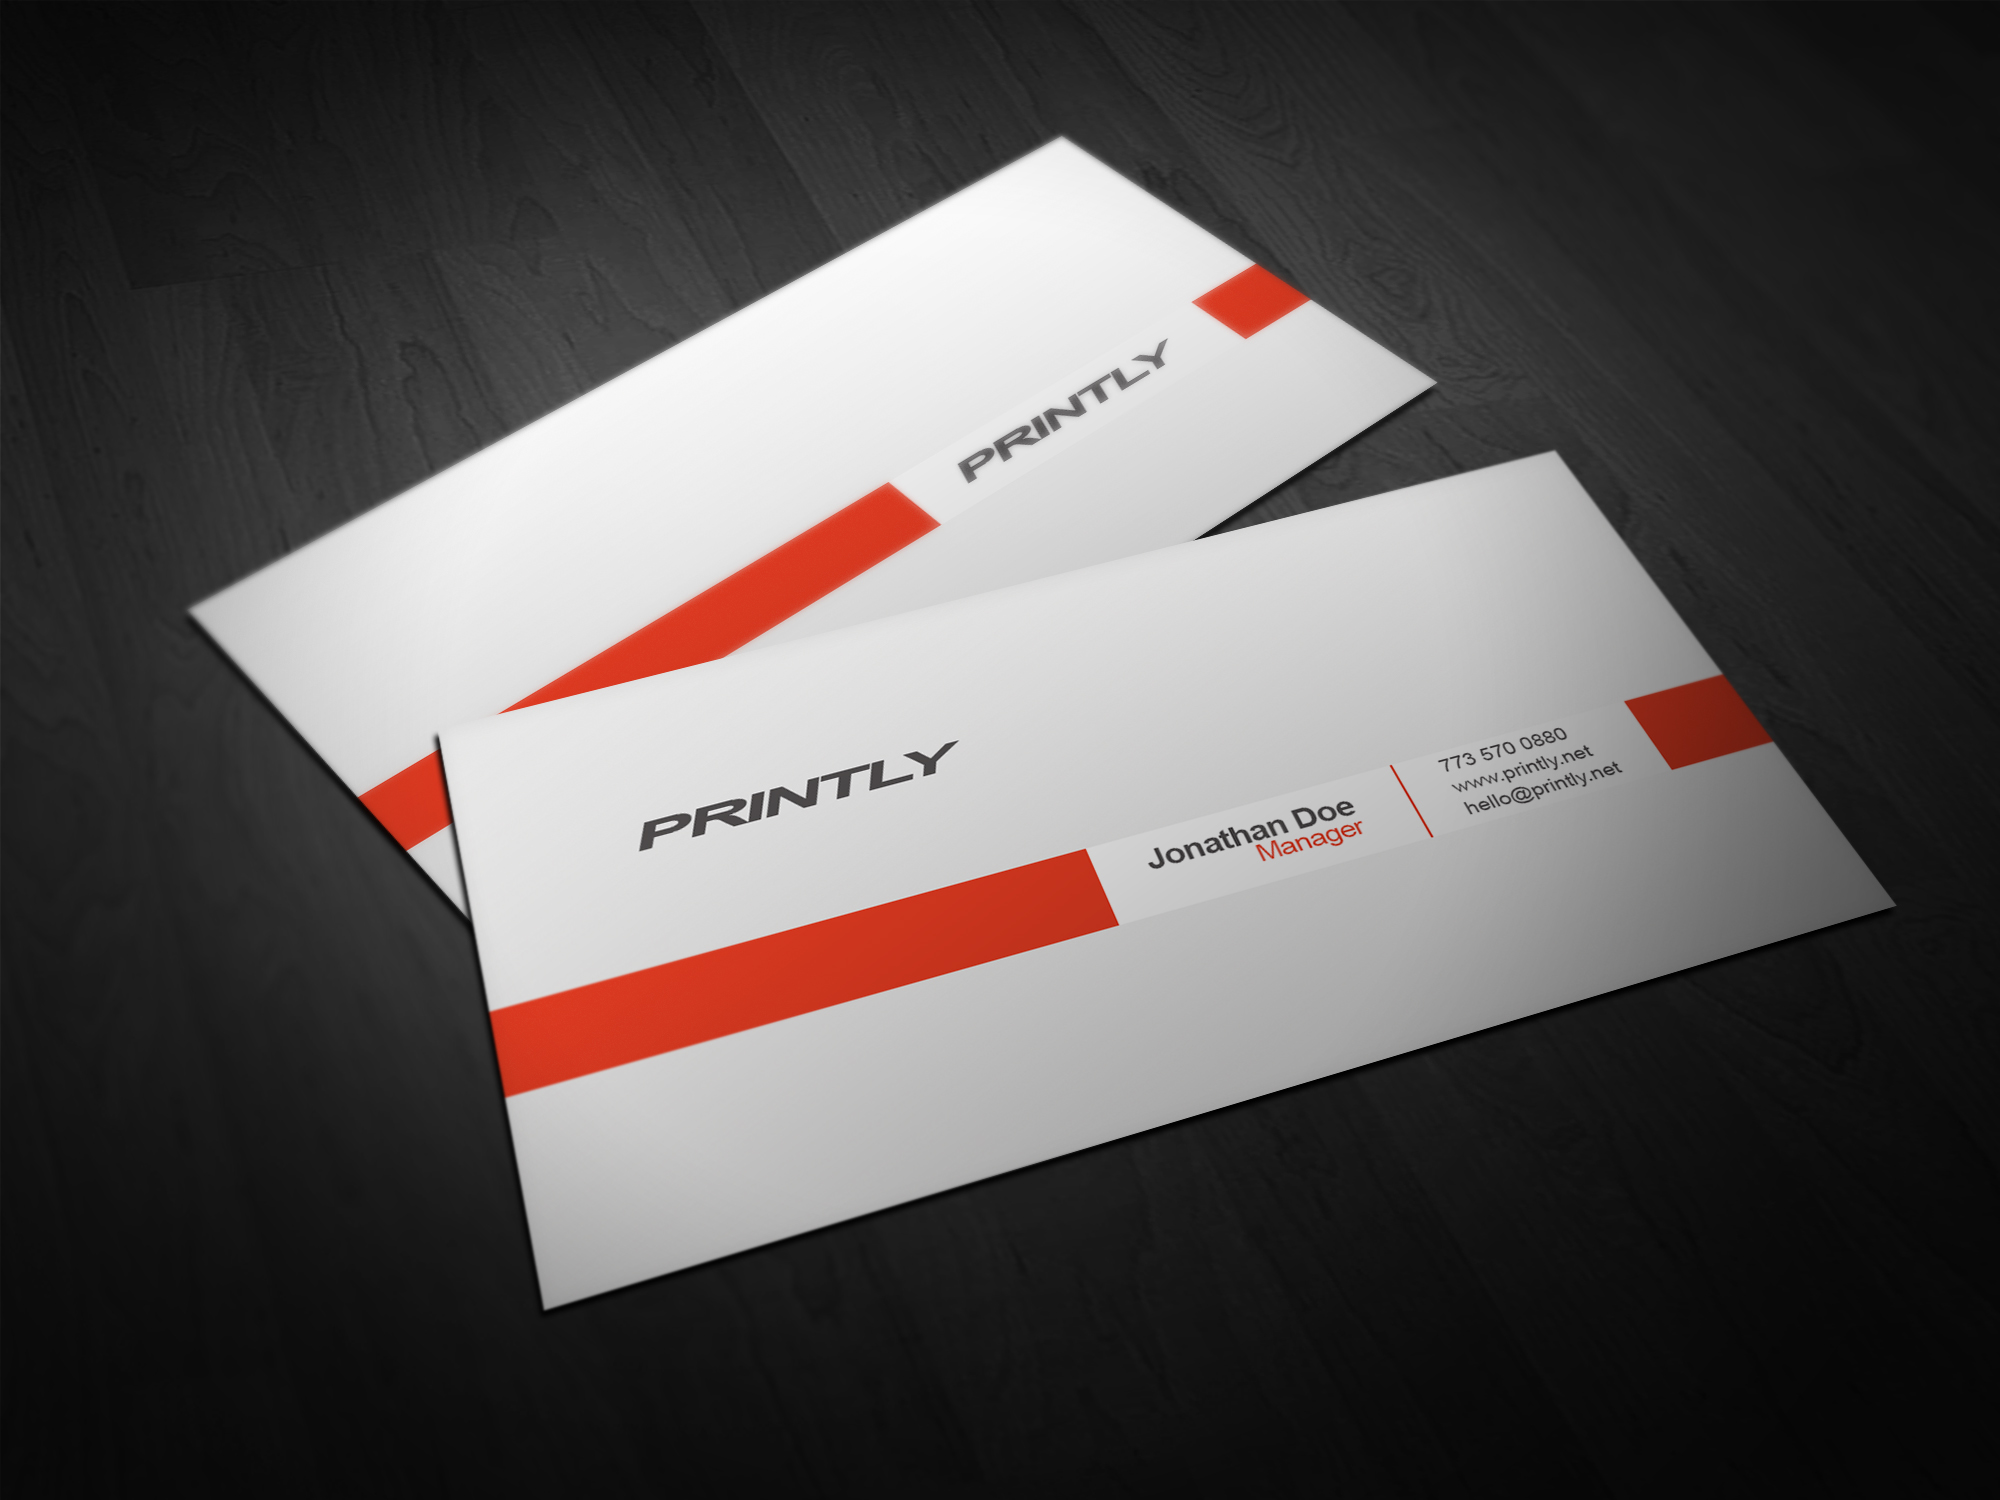 Avery professional business cards image collections card design lovely avery templates for business cards free ideas business card famous avery template 5376 ideas examples accmission Choice Image